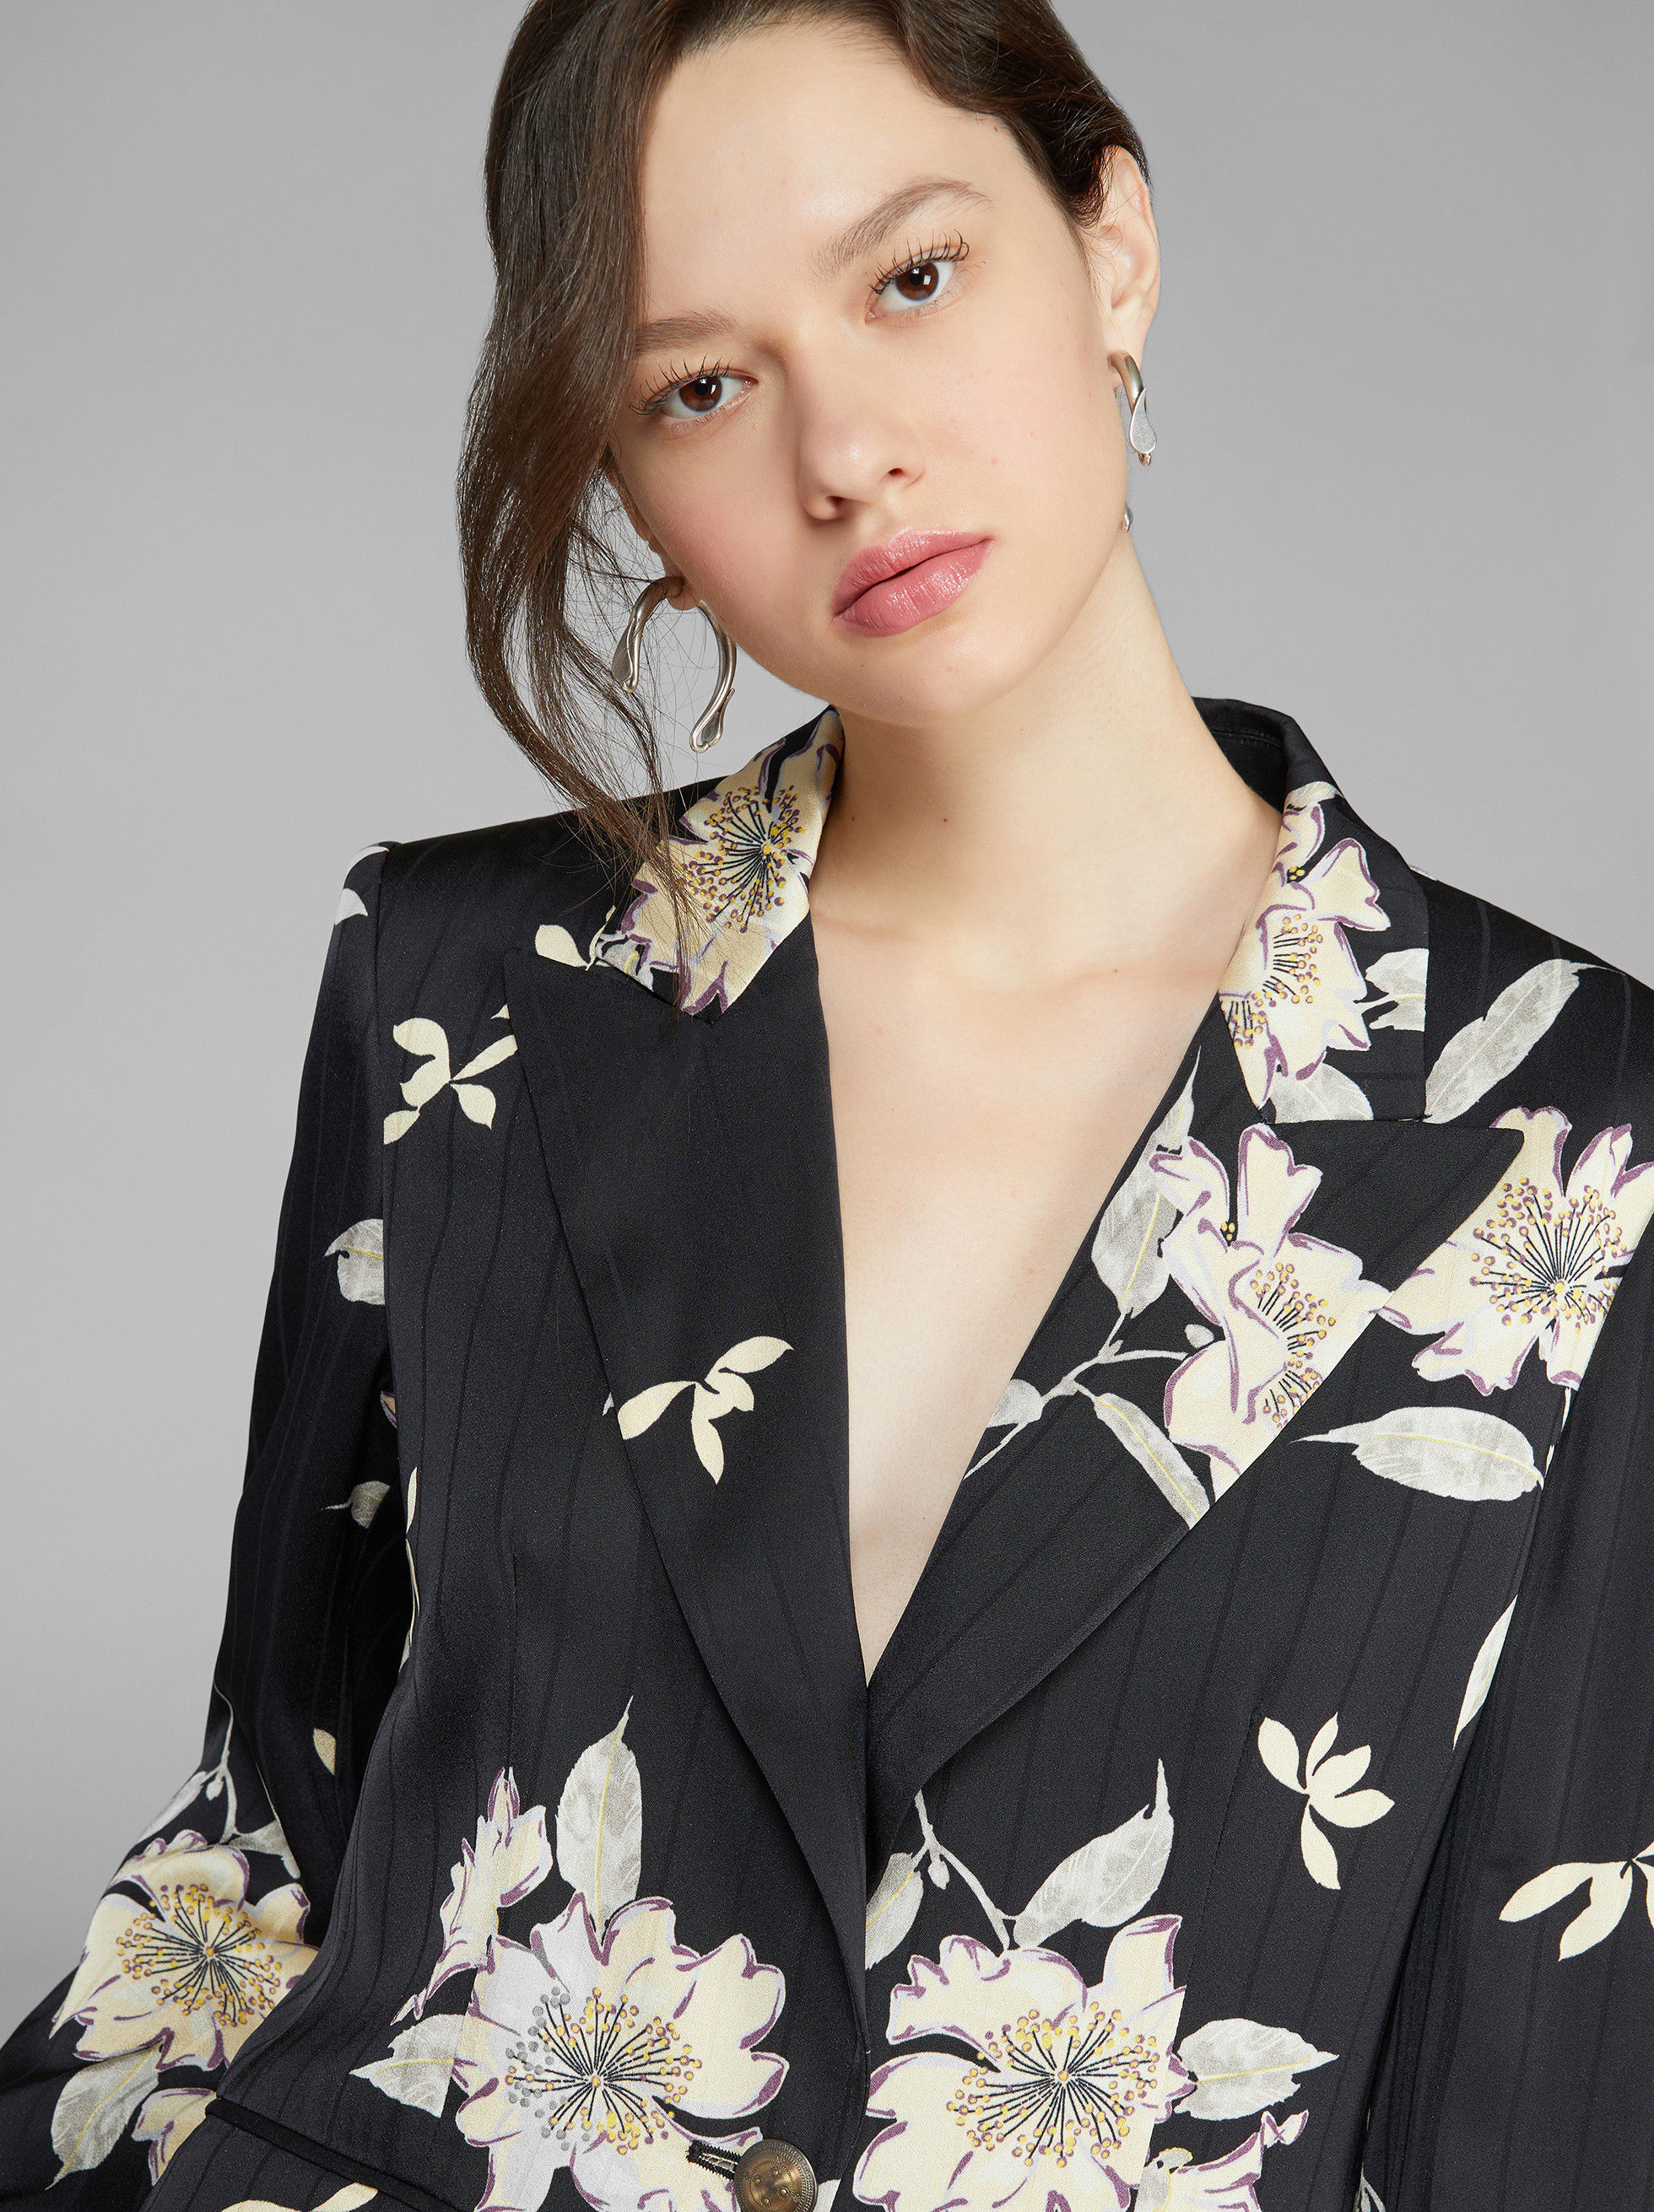 FLORAL PRINT PINSTRIPE TAILORED JACKET